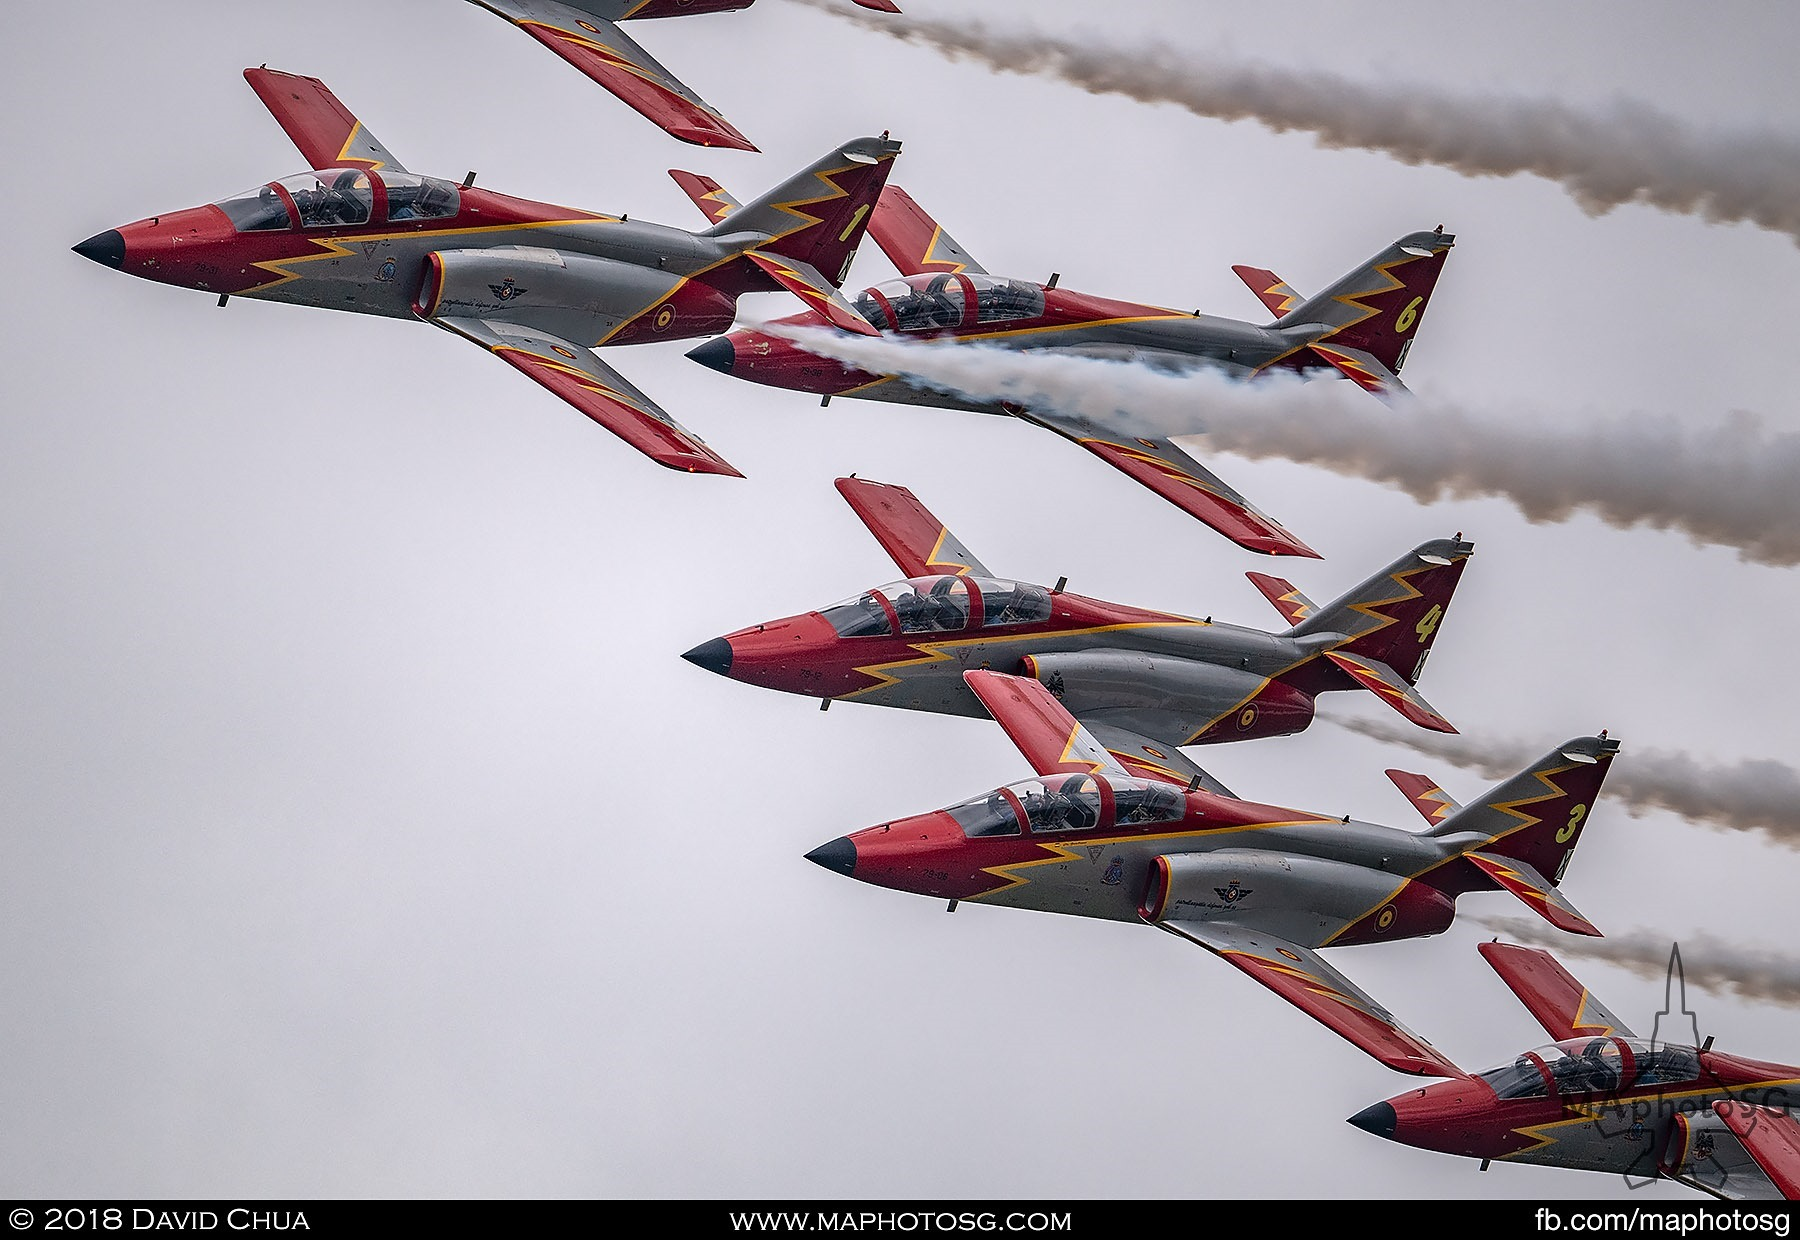 37. Casa C-101 Aviojets of the Spanish Air Force Patrulla Águila Team